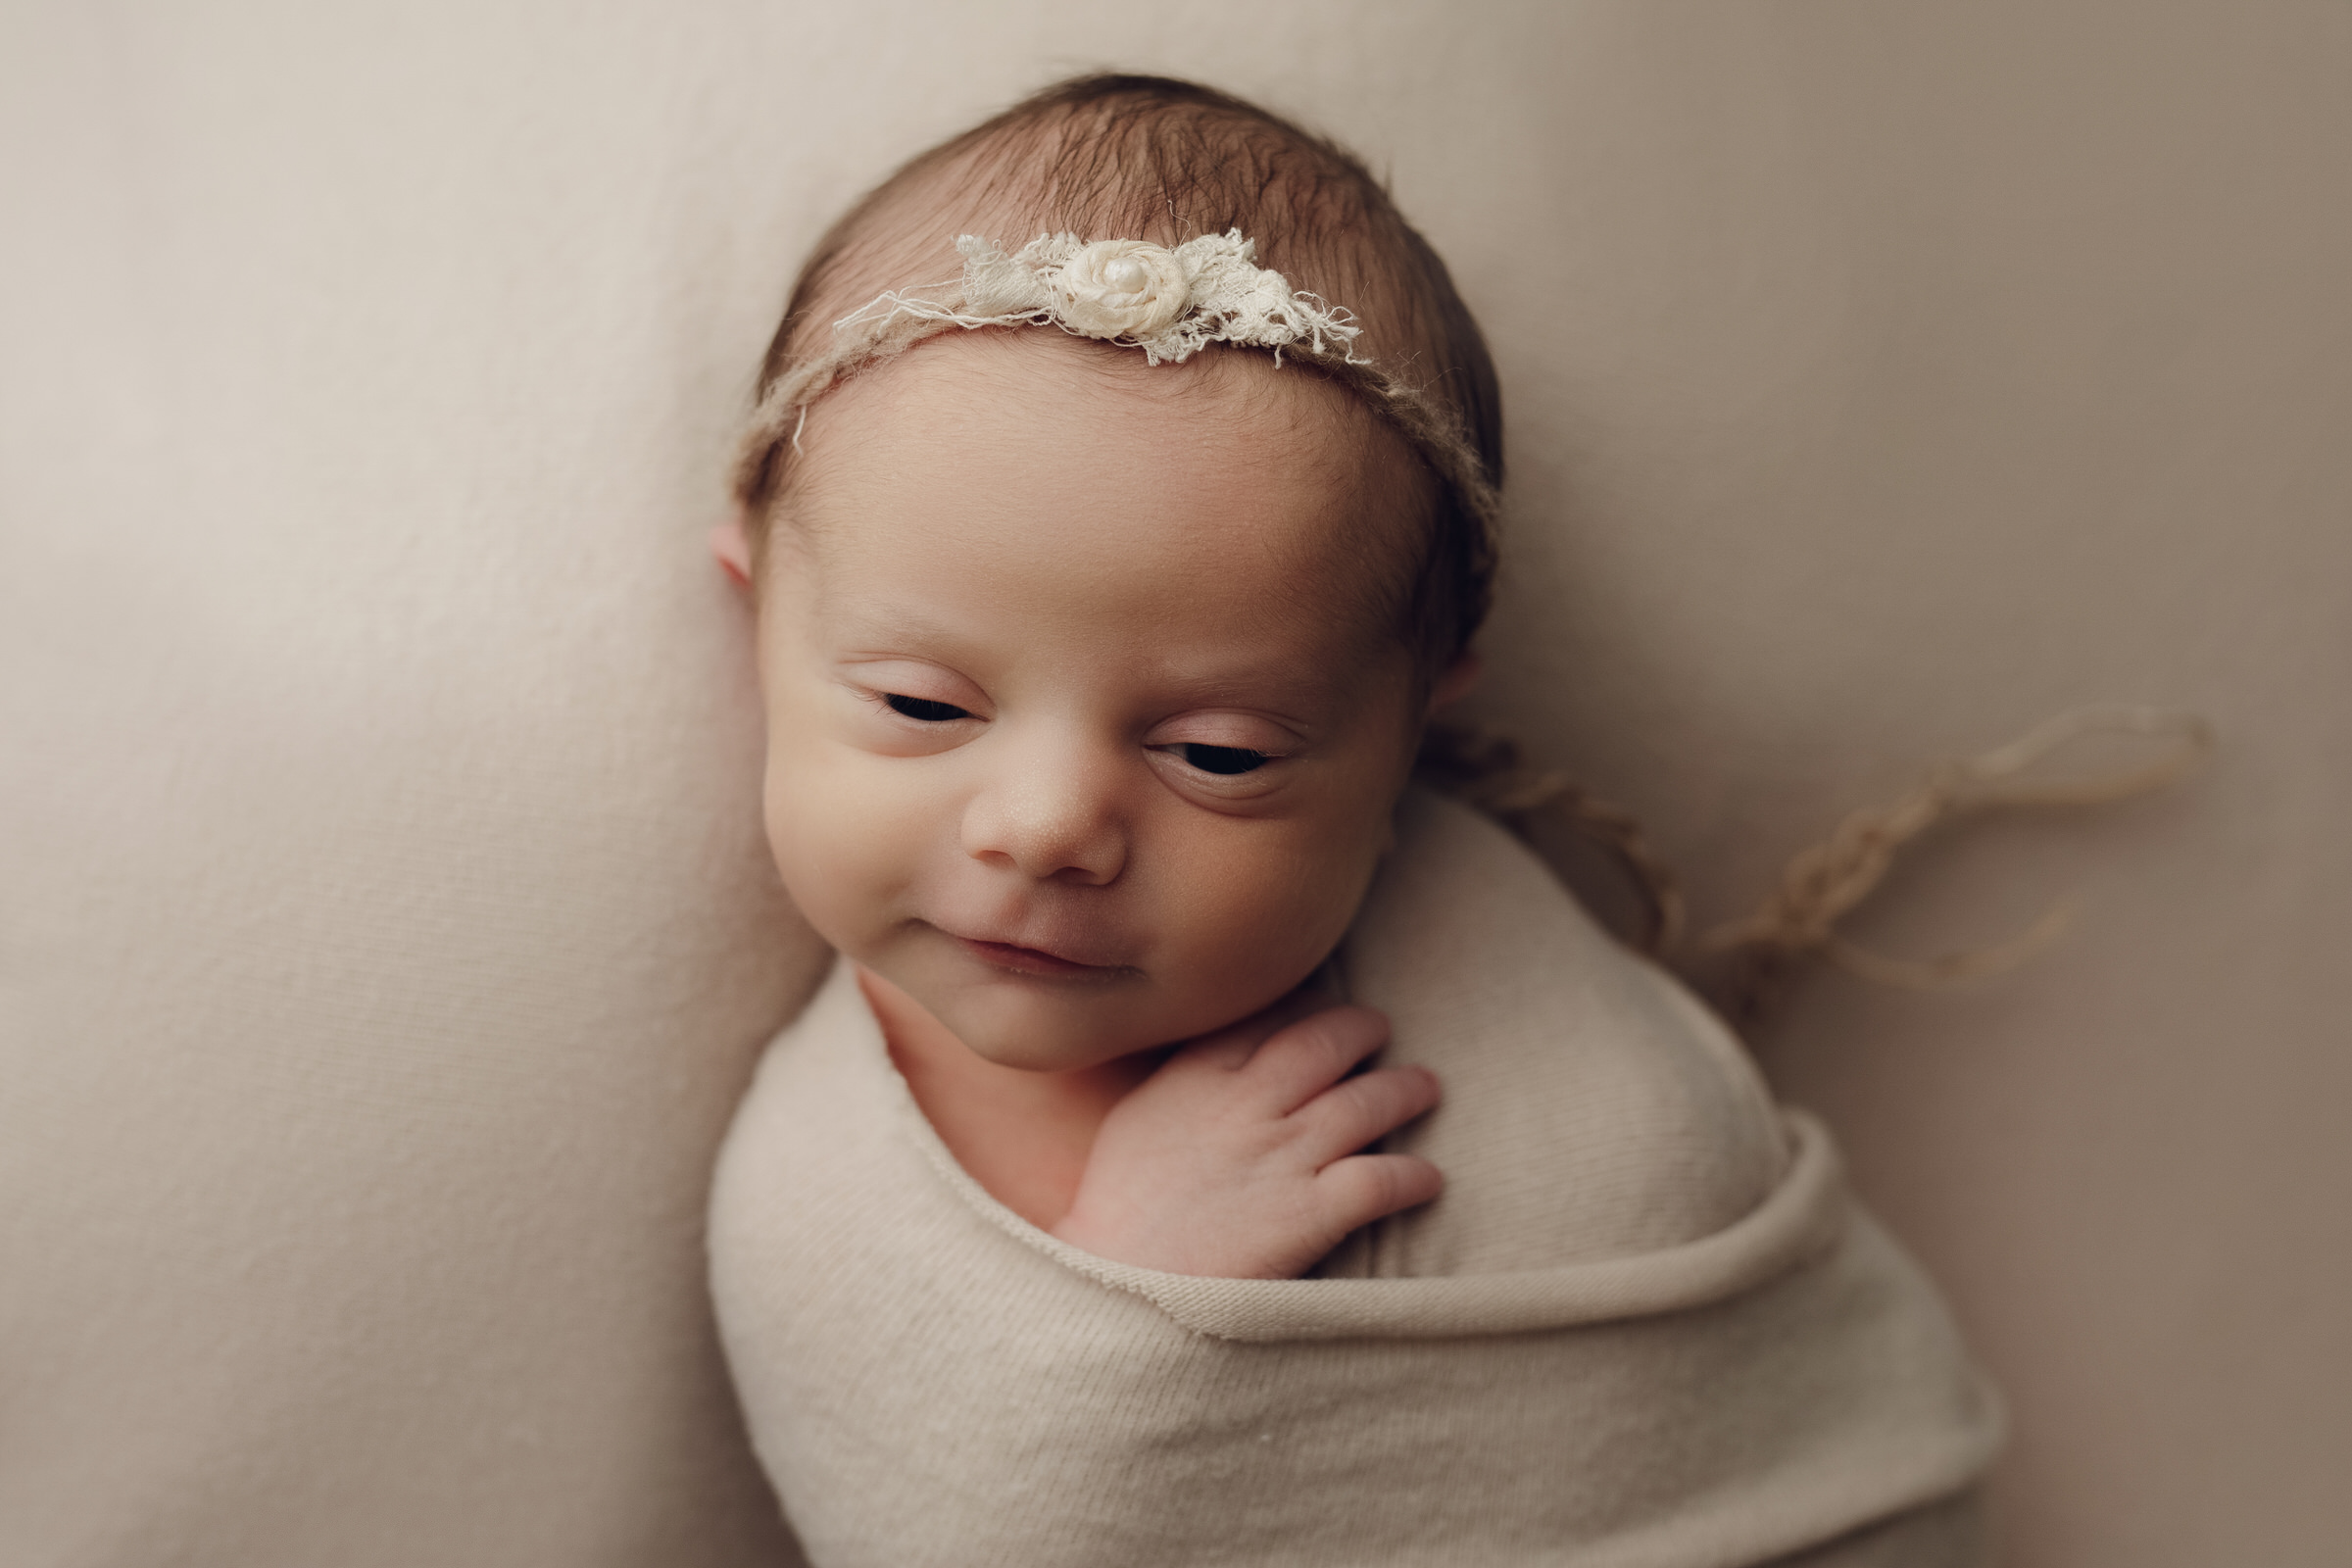 baby wrapped up awake and smiling